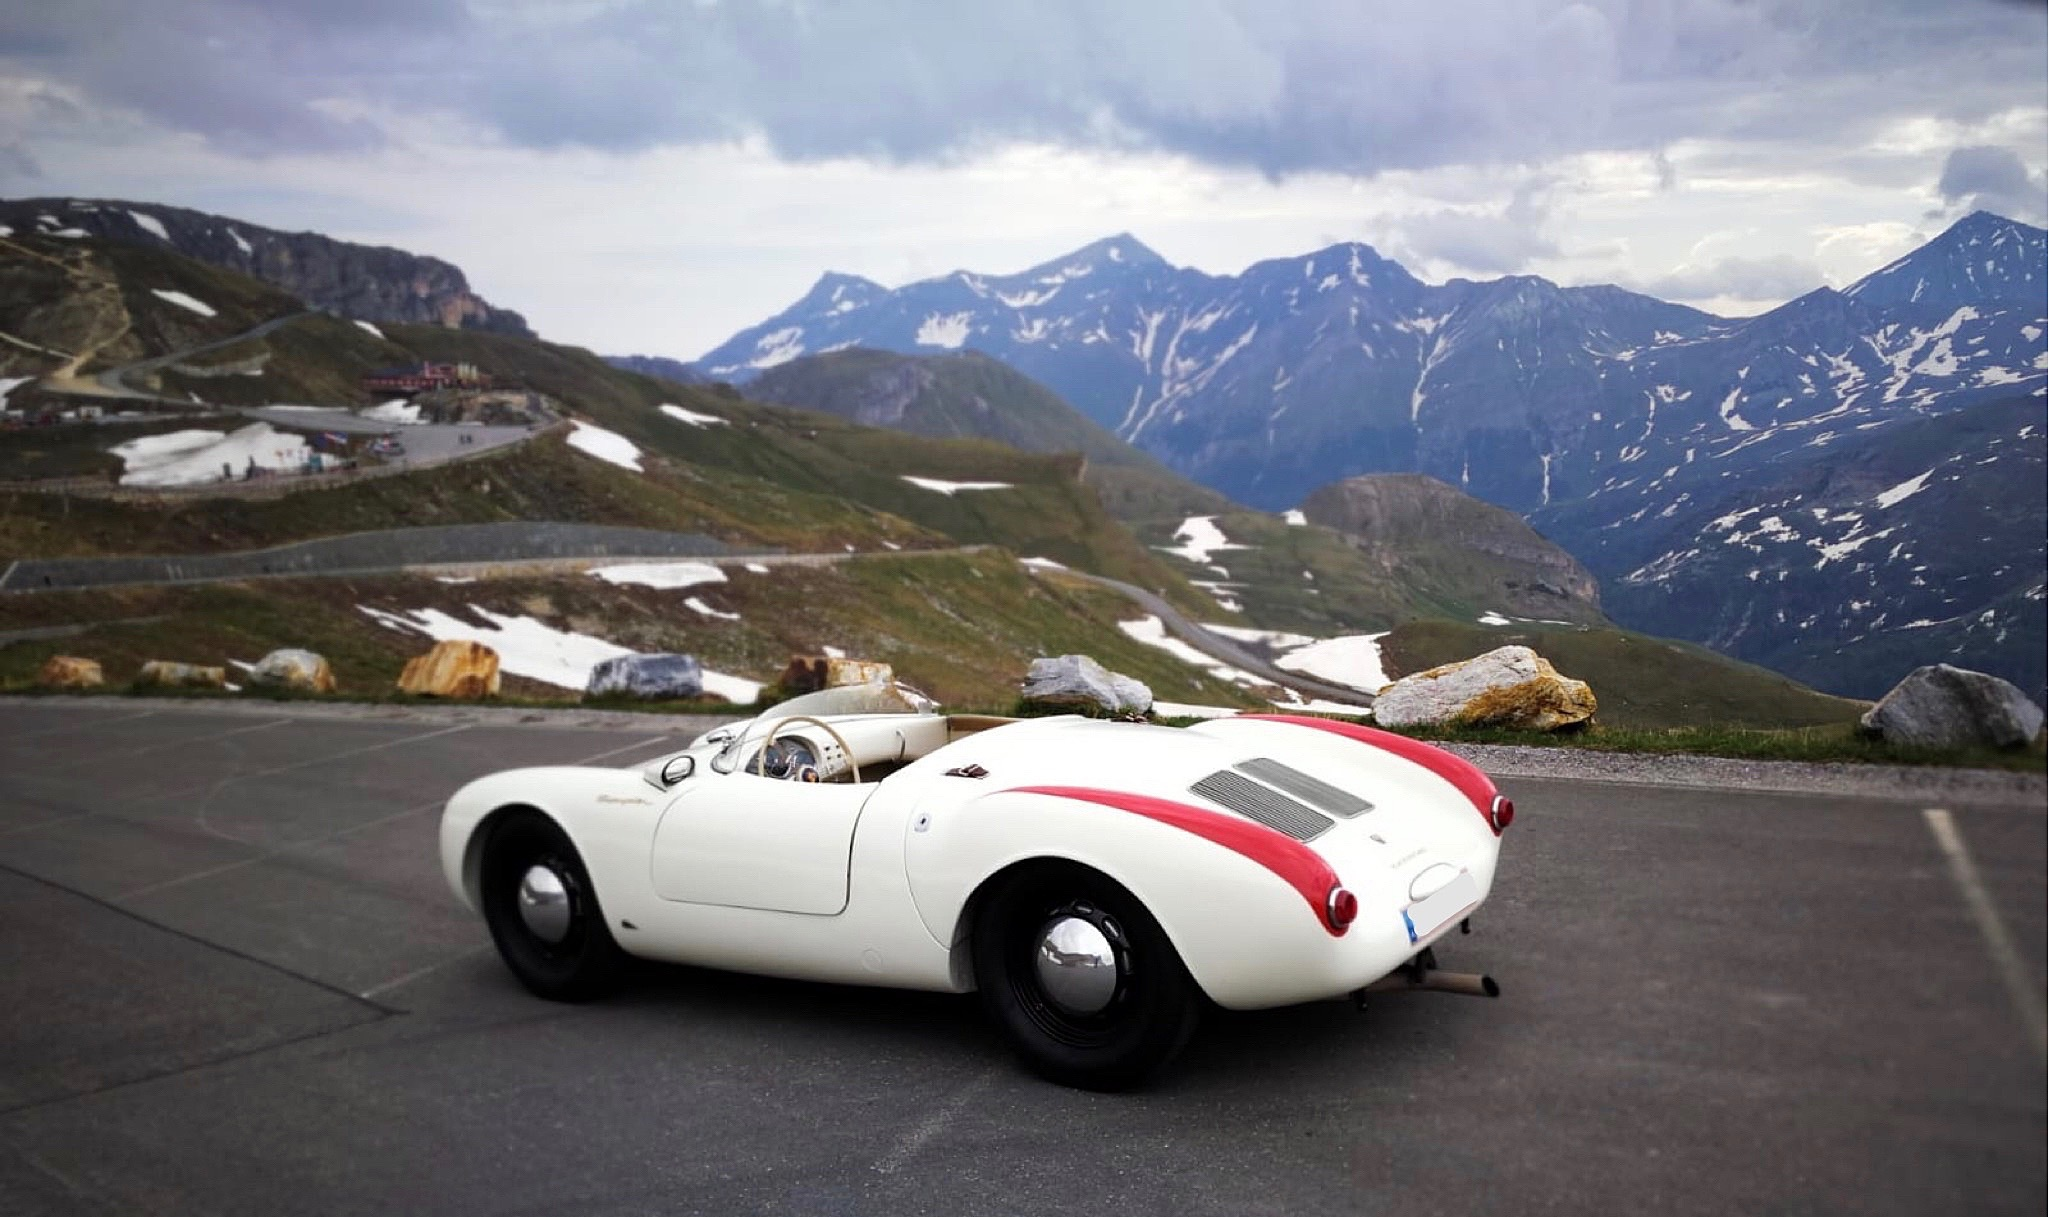 Ice races, Ice races will feature Ferry Porsche's 550 Spyder, ClassicCars.com Journal